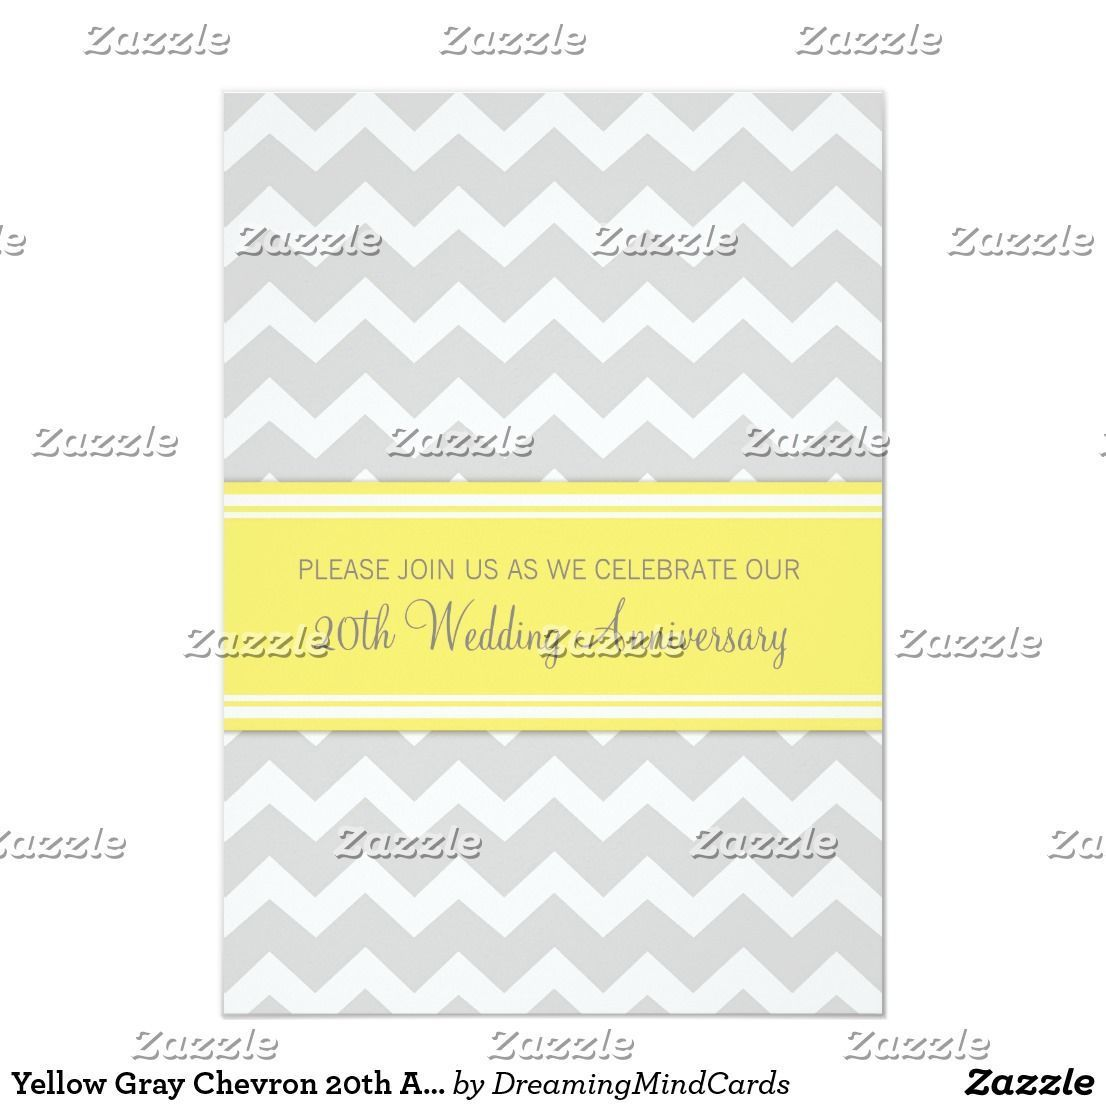 Yellow Gray Chevron 20th Anniversary InvitationNote: This is an affiliate link.  #wedding #weddings #weddinginvites #invites #invitation #weddingseason #seasonalwedding #gettingmarried #marriage #weddingplanning #fallwedding #mrandmrs #marriage #gettinghitched #weddingplanner #invite #savethedate #engagementparty #engagement #engaged #bridalshower #bride #shower #celebrate #20thanniversarywedding Yellow Gray Chevron 20th Anniversary InvitationNote: This is an affiliate link.  #wedding #weddings #20thanniversarywedding